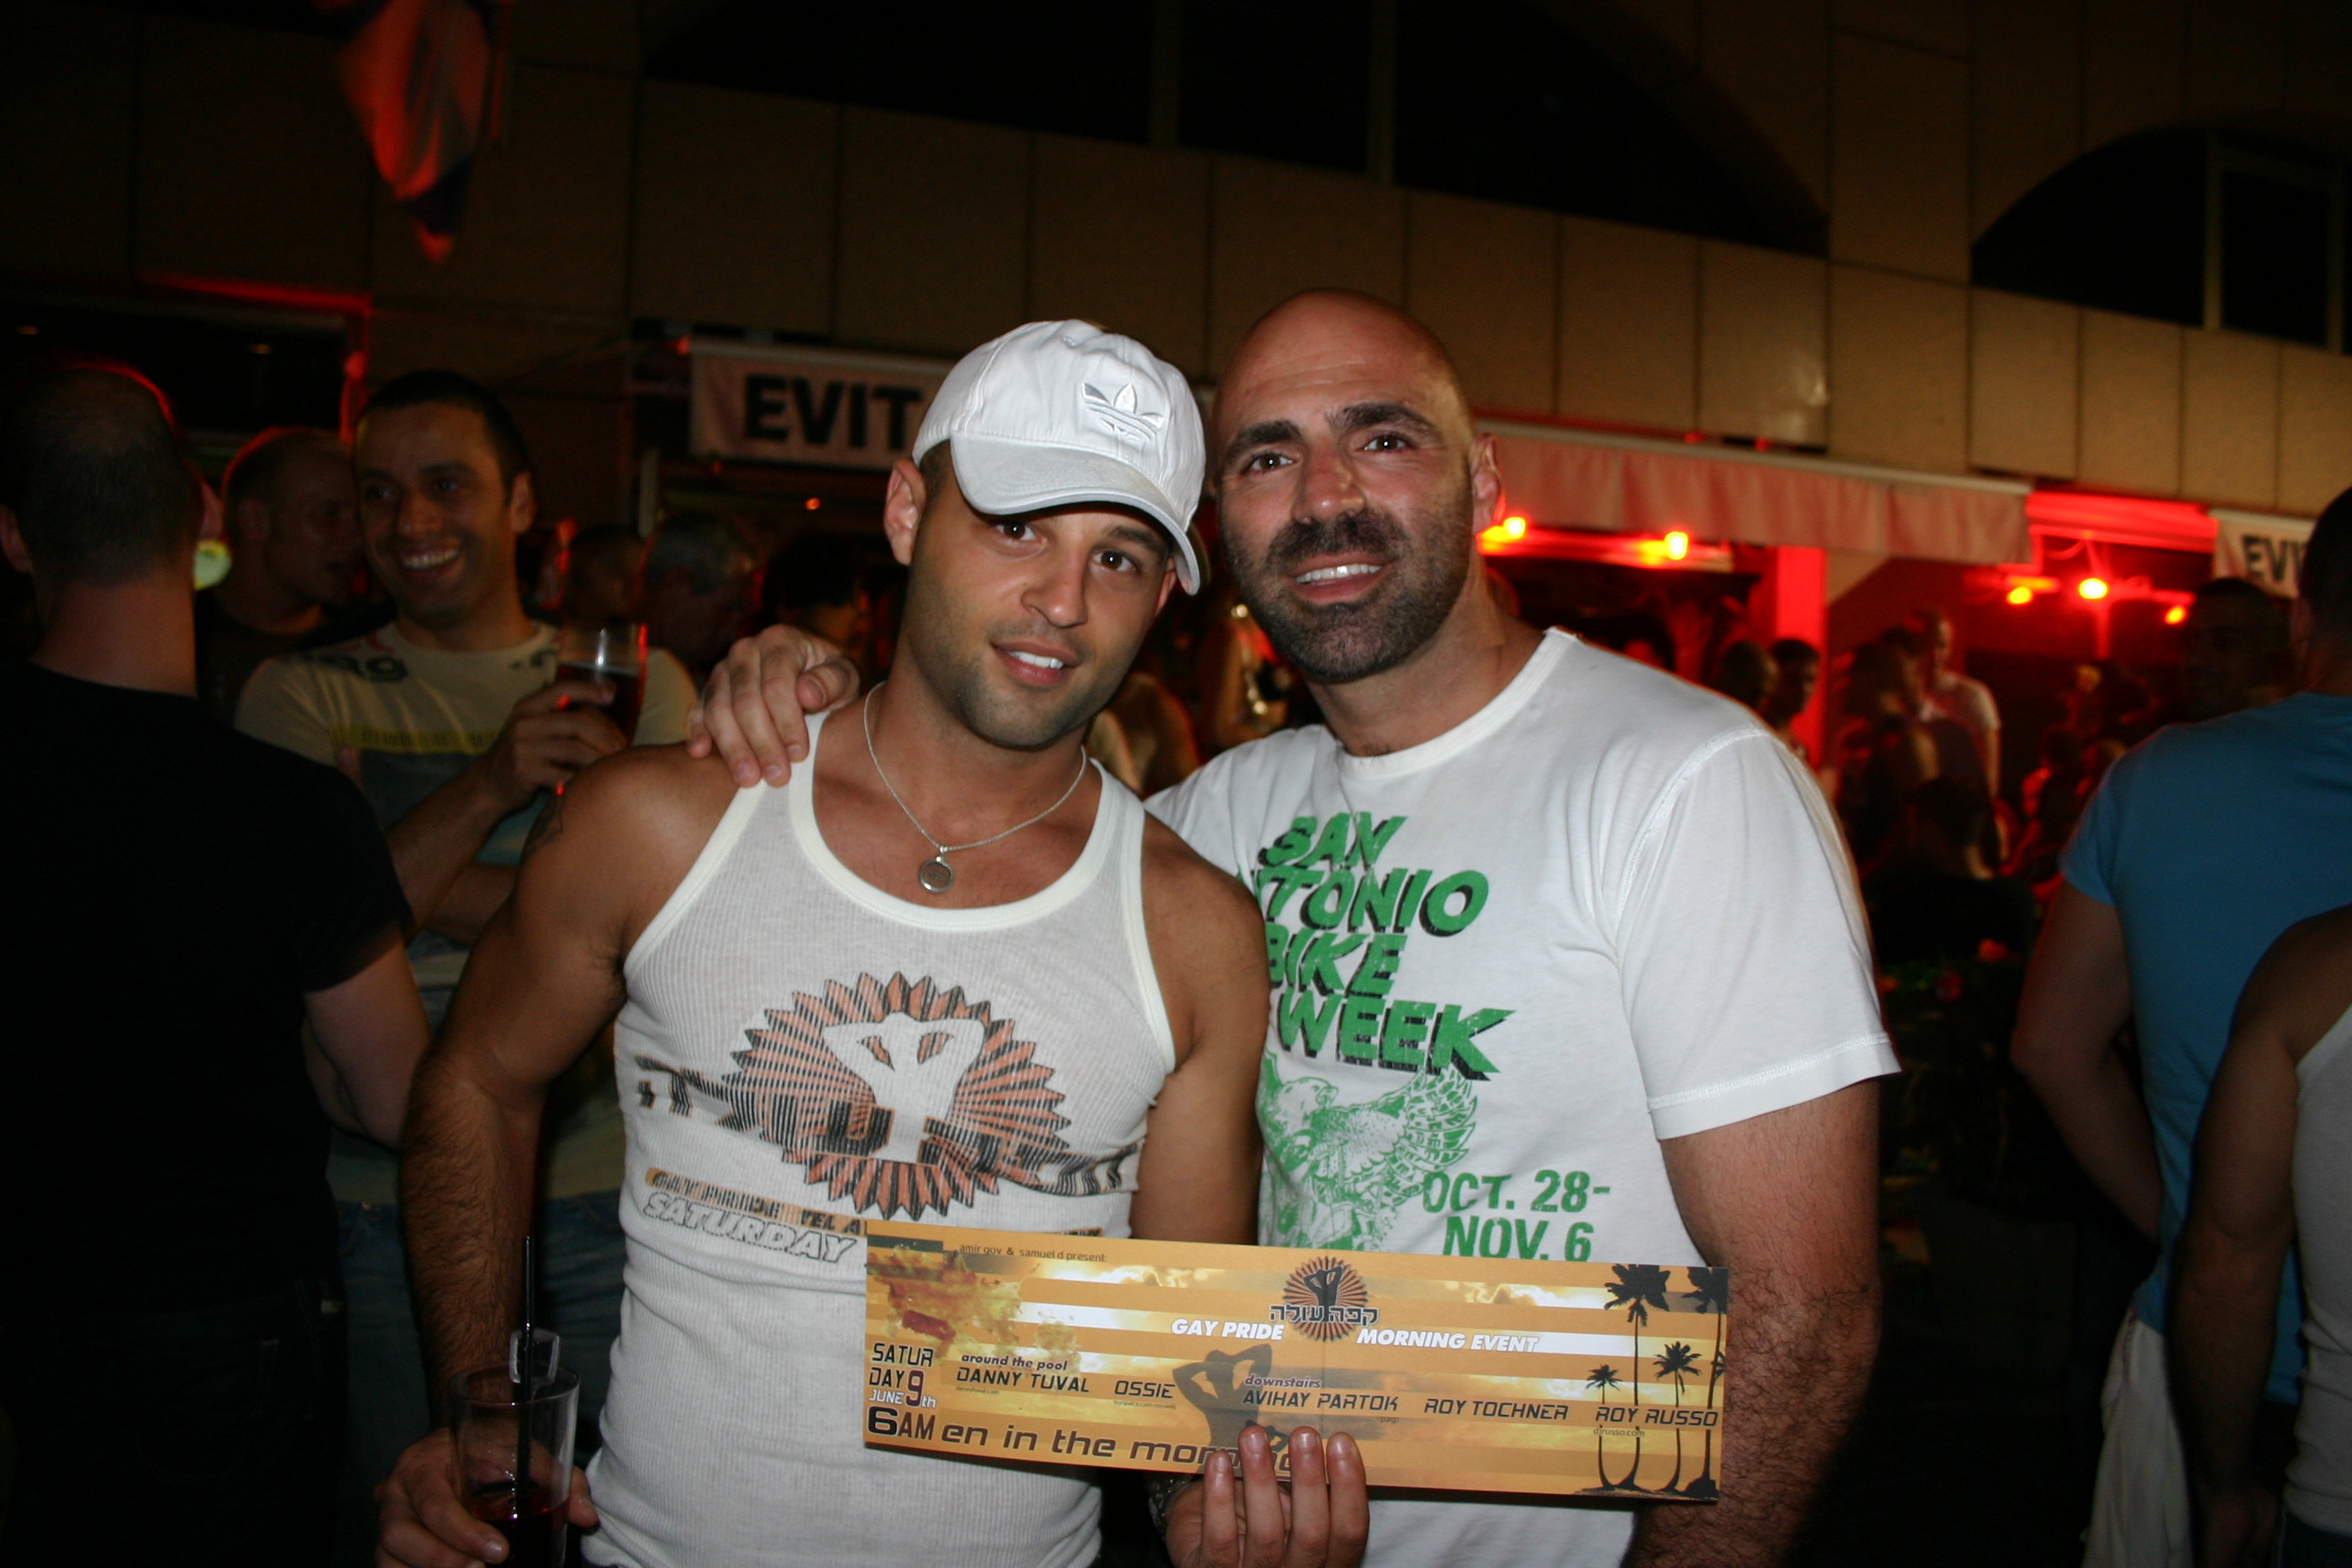 Gay Tel Aviv: Party-Flyer-Verteiler mit Kumpel vor der Evita Bar in Tel Aviv, Foto: Robert Niedermeier